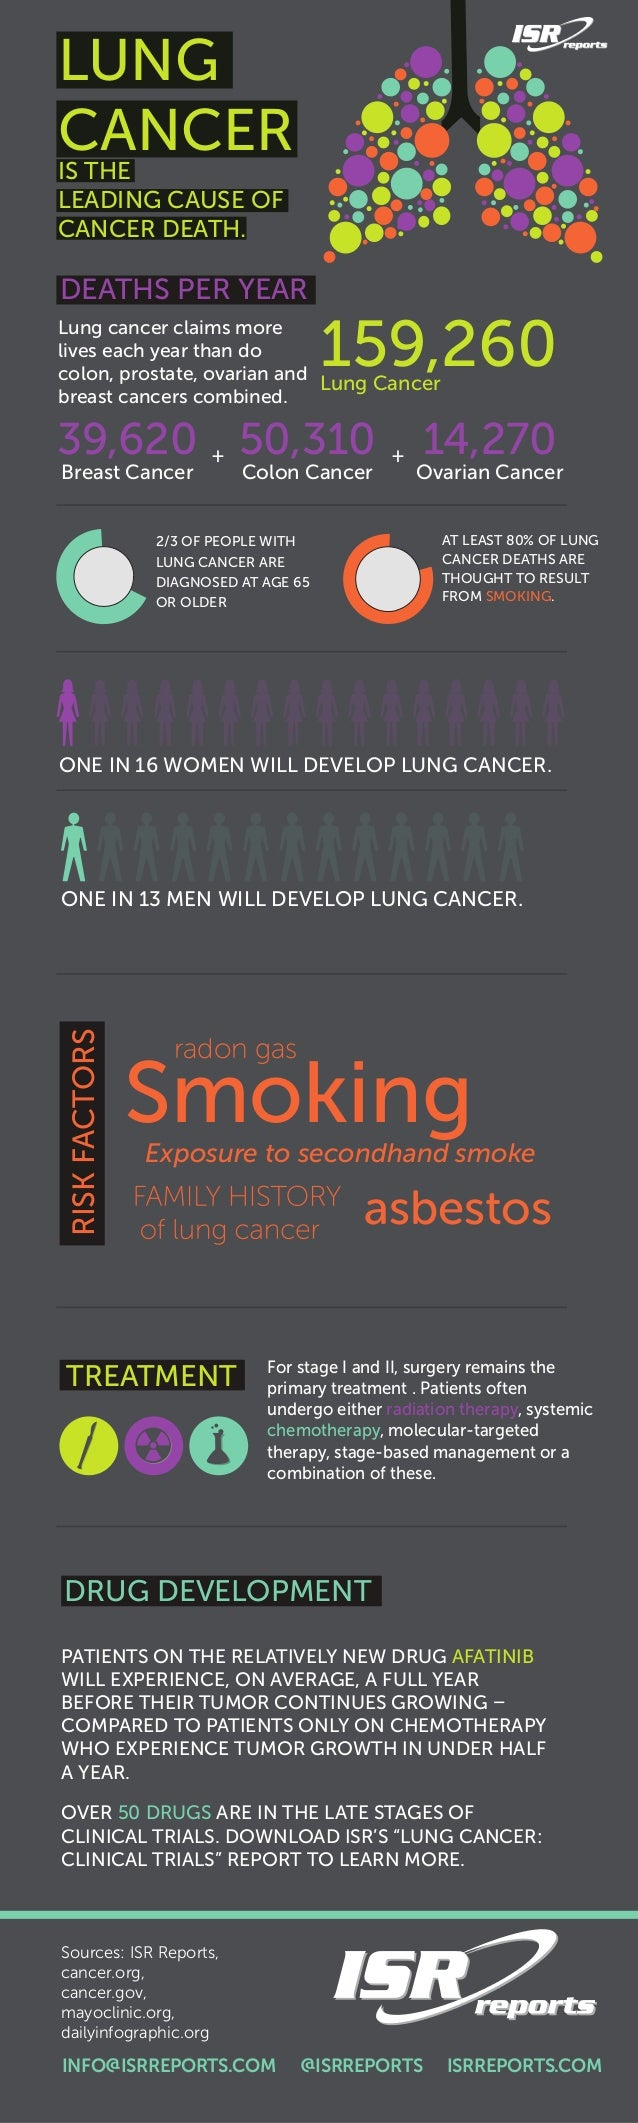 Lung cancer claims more lives each year than do colon, prostate, ovarian and breast cancers combined. 39,620 Breast Cancer...